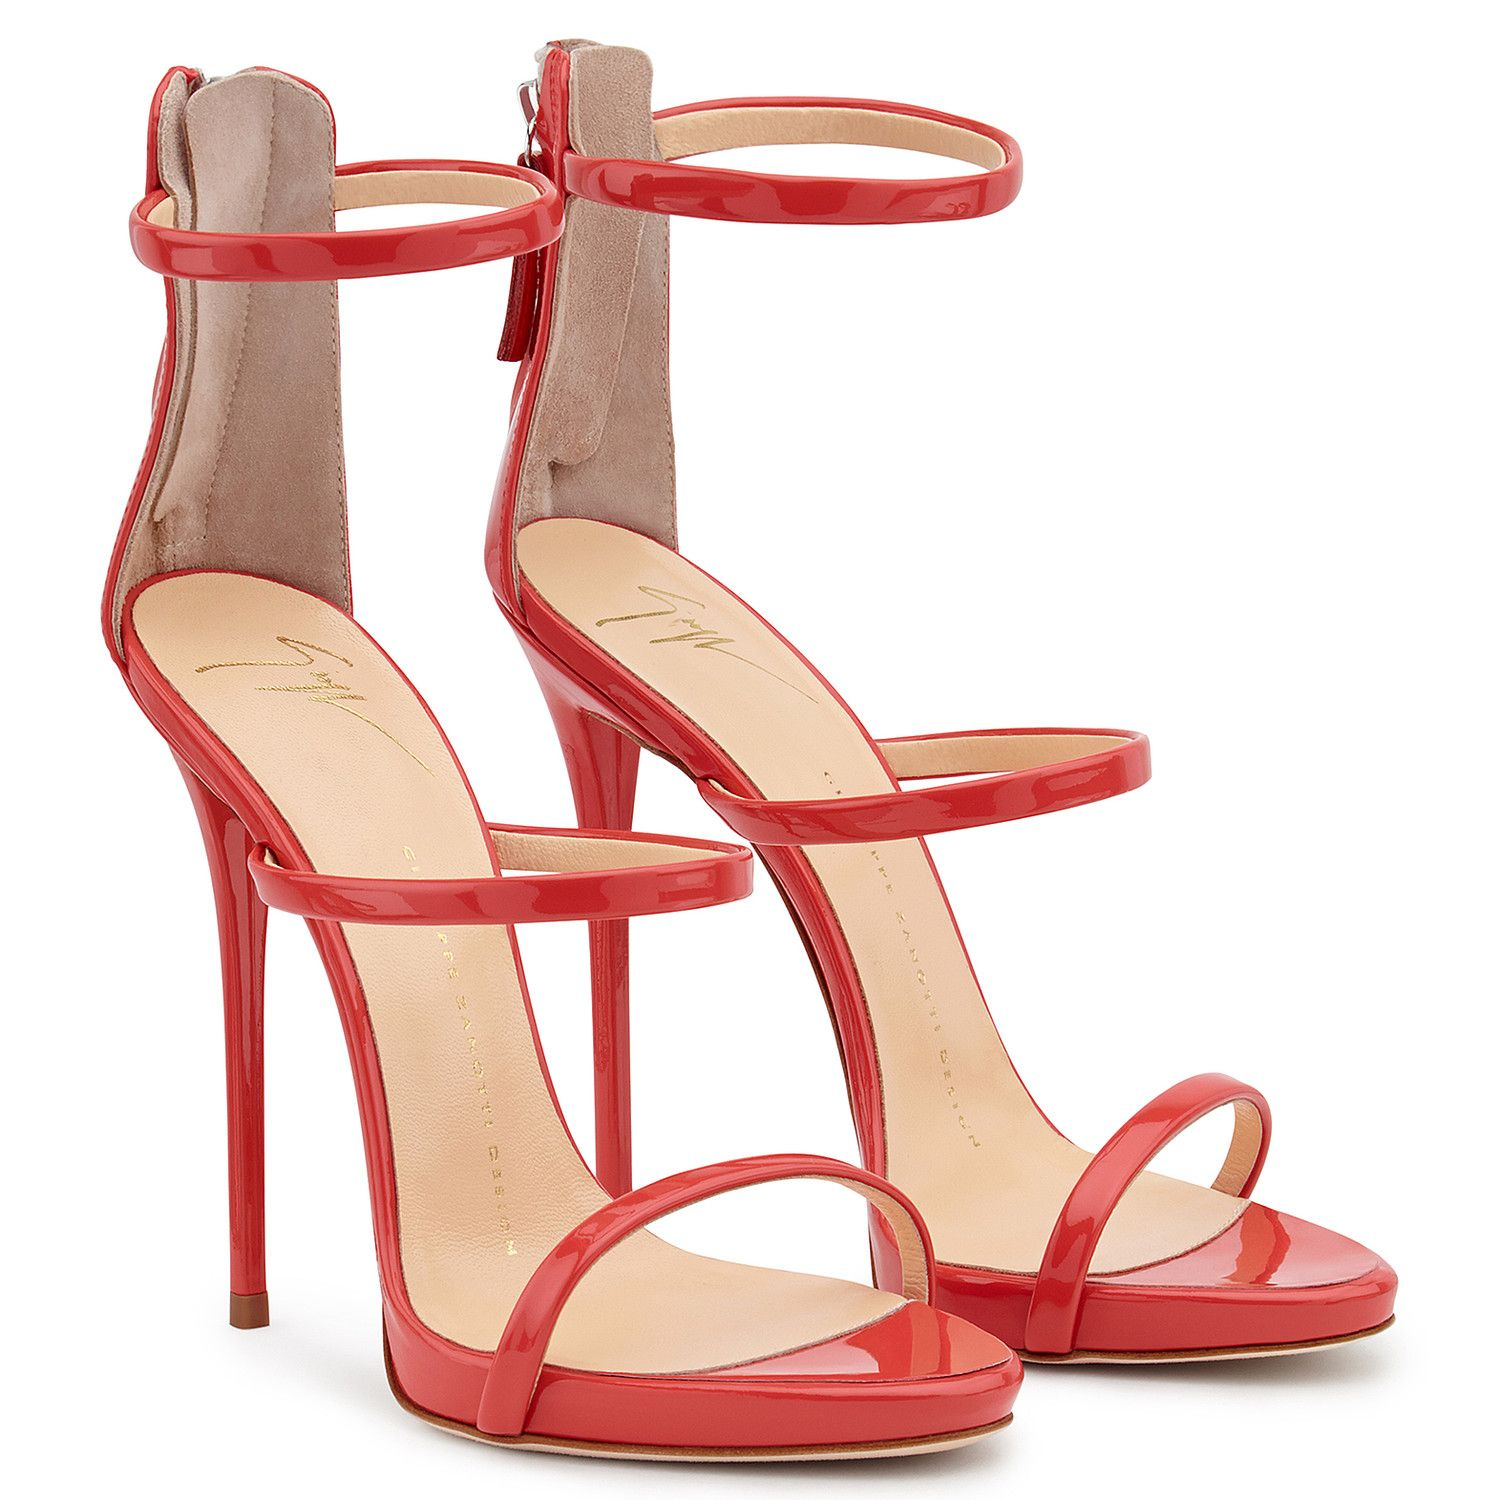 Harmony Sandals Red Giuseppe Zanotti Giuseppe Zanotti Design Online Store In 2020 Giuseppe Zanotti Heels Fashion Heels Red Shoes Sandals